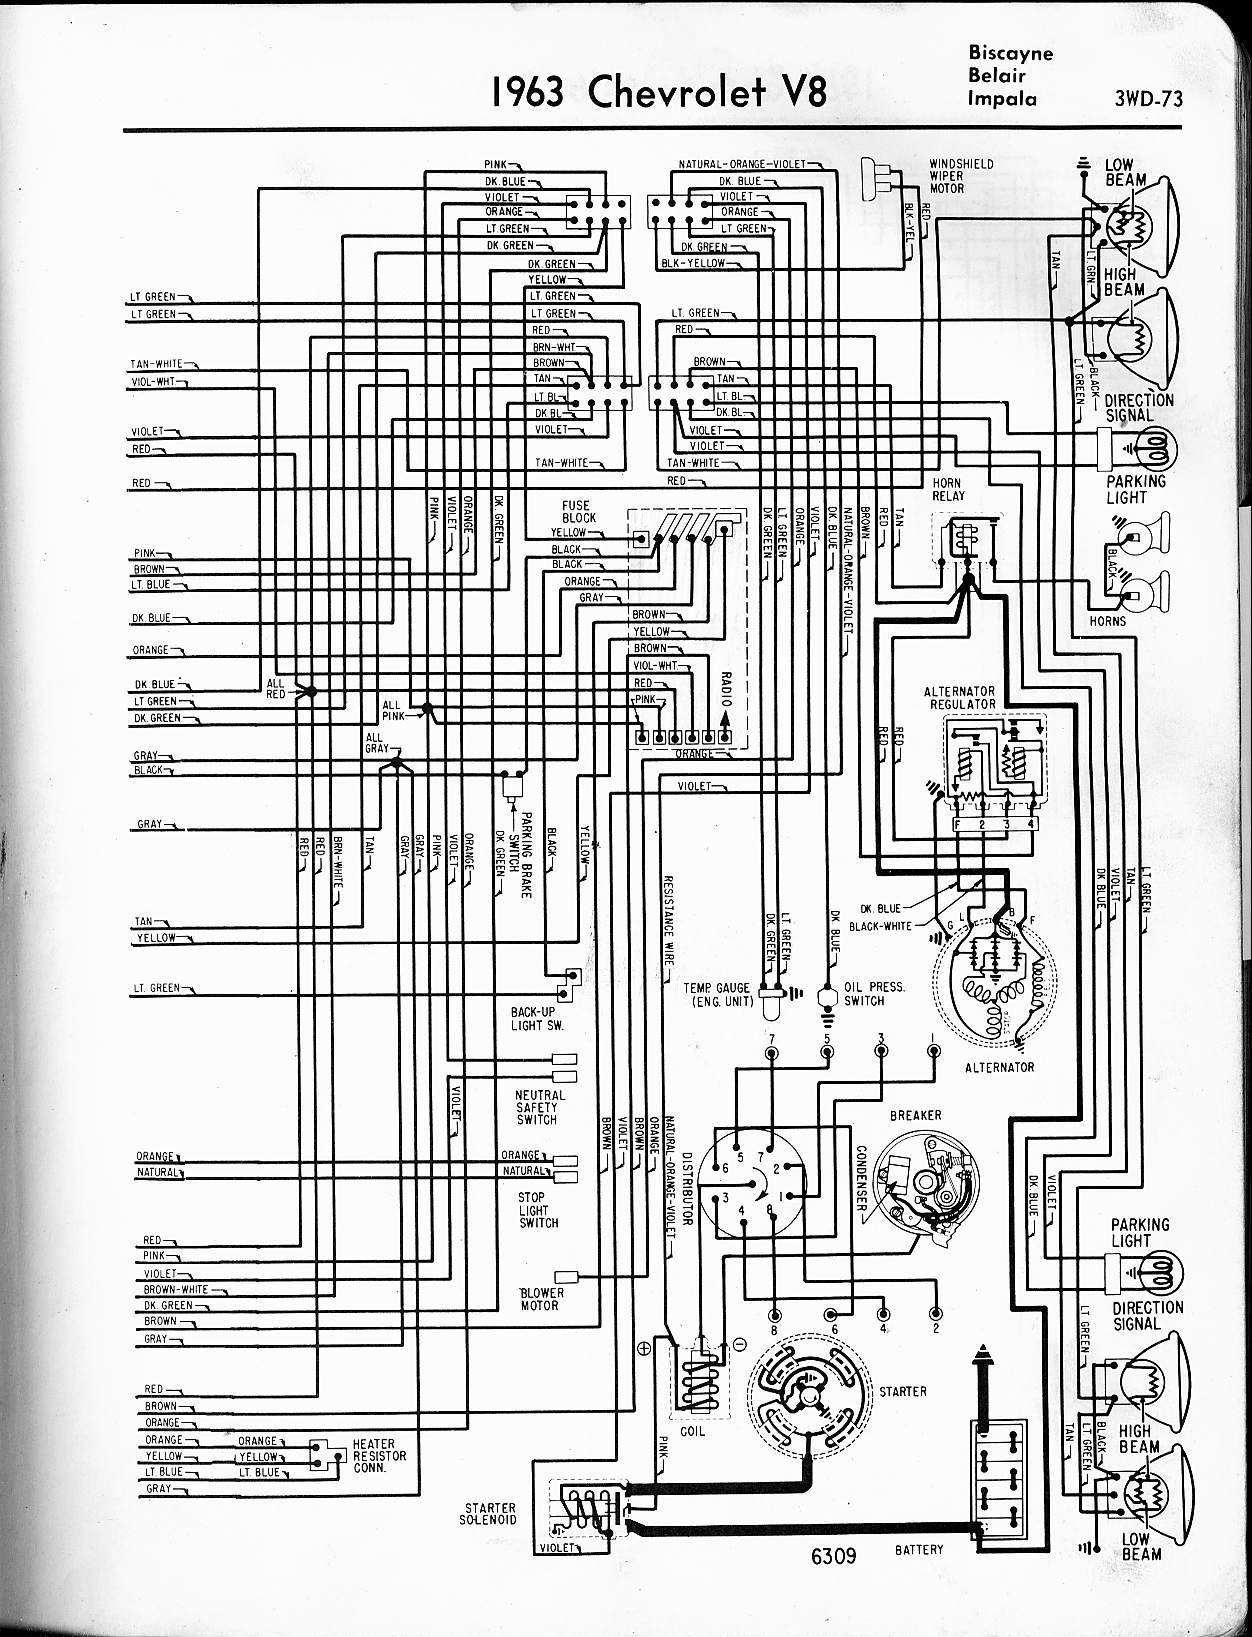 C60 Wiring Diagram Another Blog About 1984 Chevy C70 Harness 1965 29 Images 1966